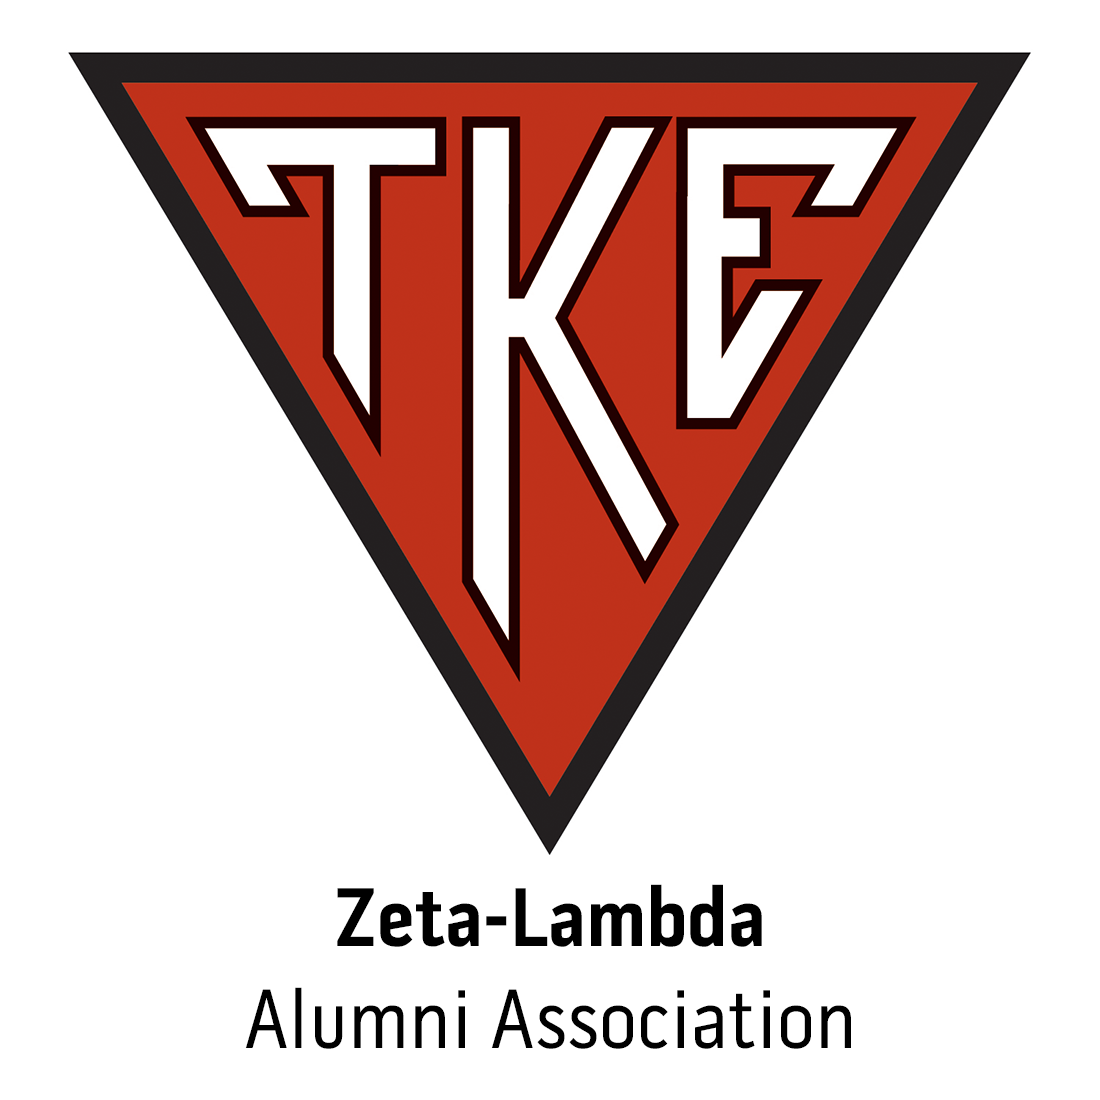 Zeta-Lambda Alumni Association at Bowling Green State University